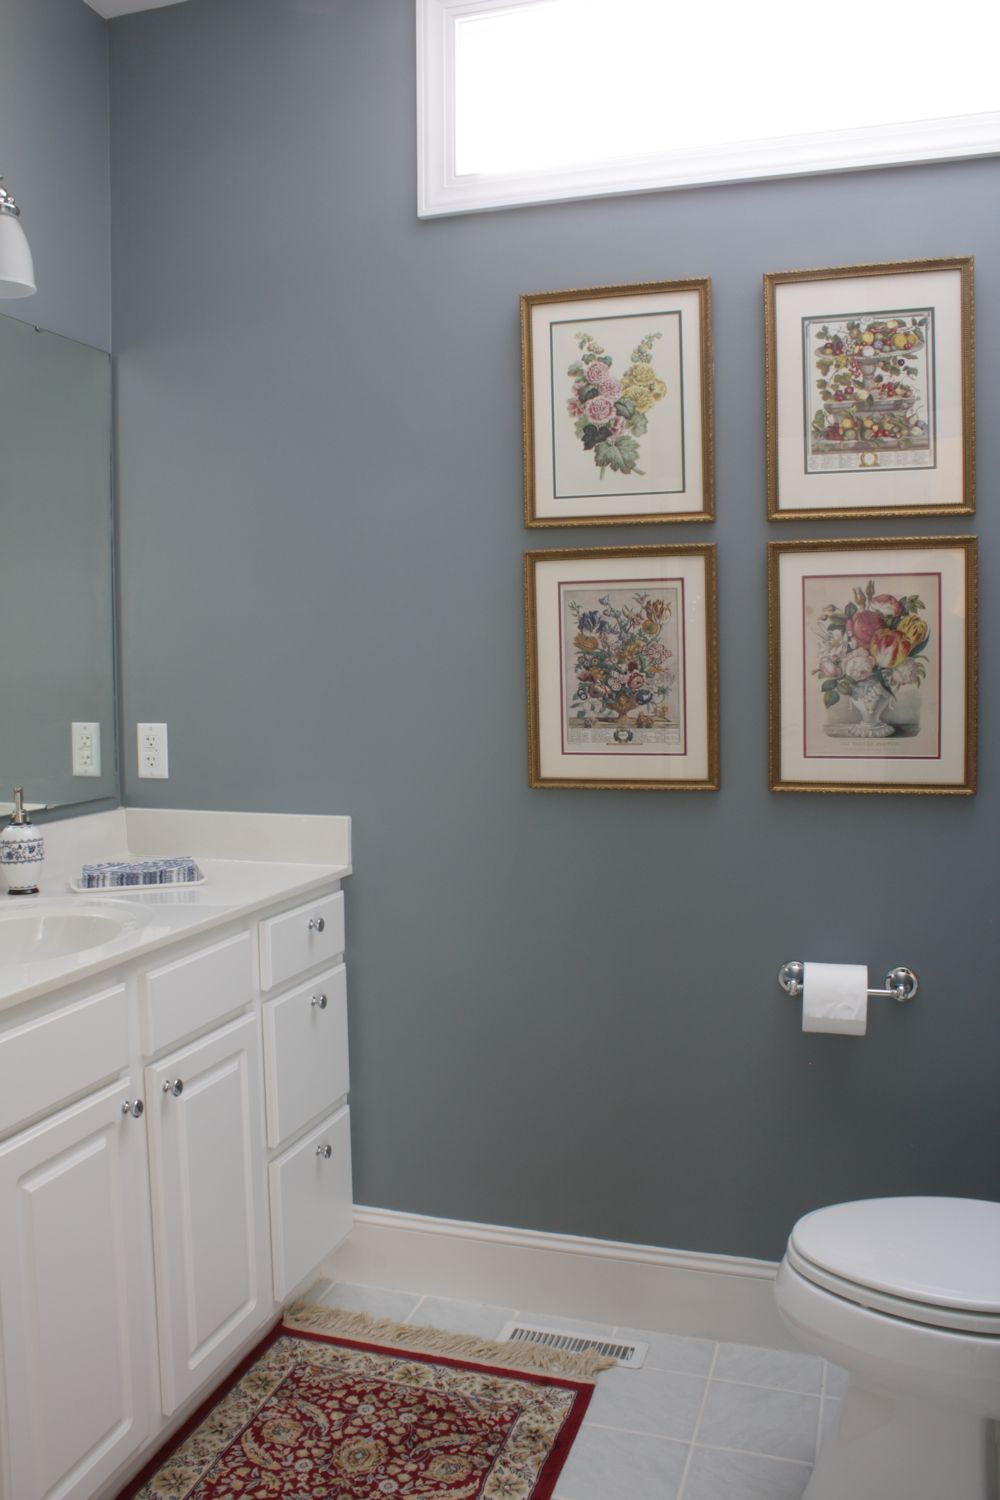 Bathroom Paint Ideas Lowes : The comforts of home guest bath so far